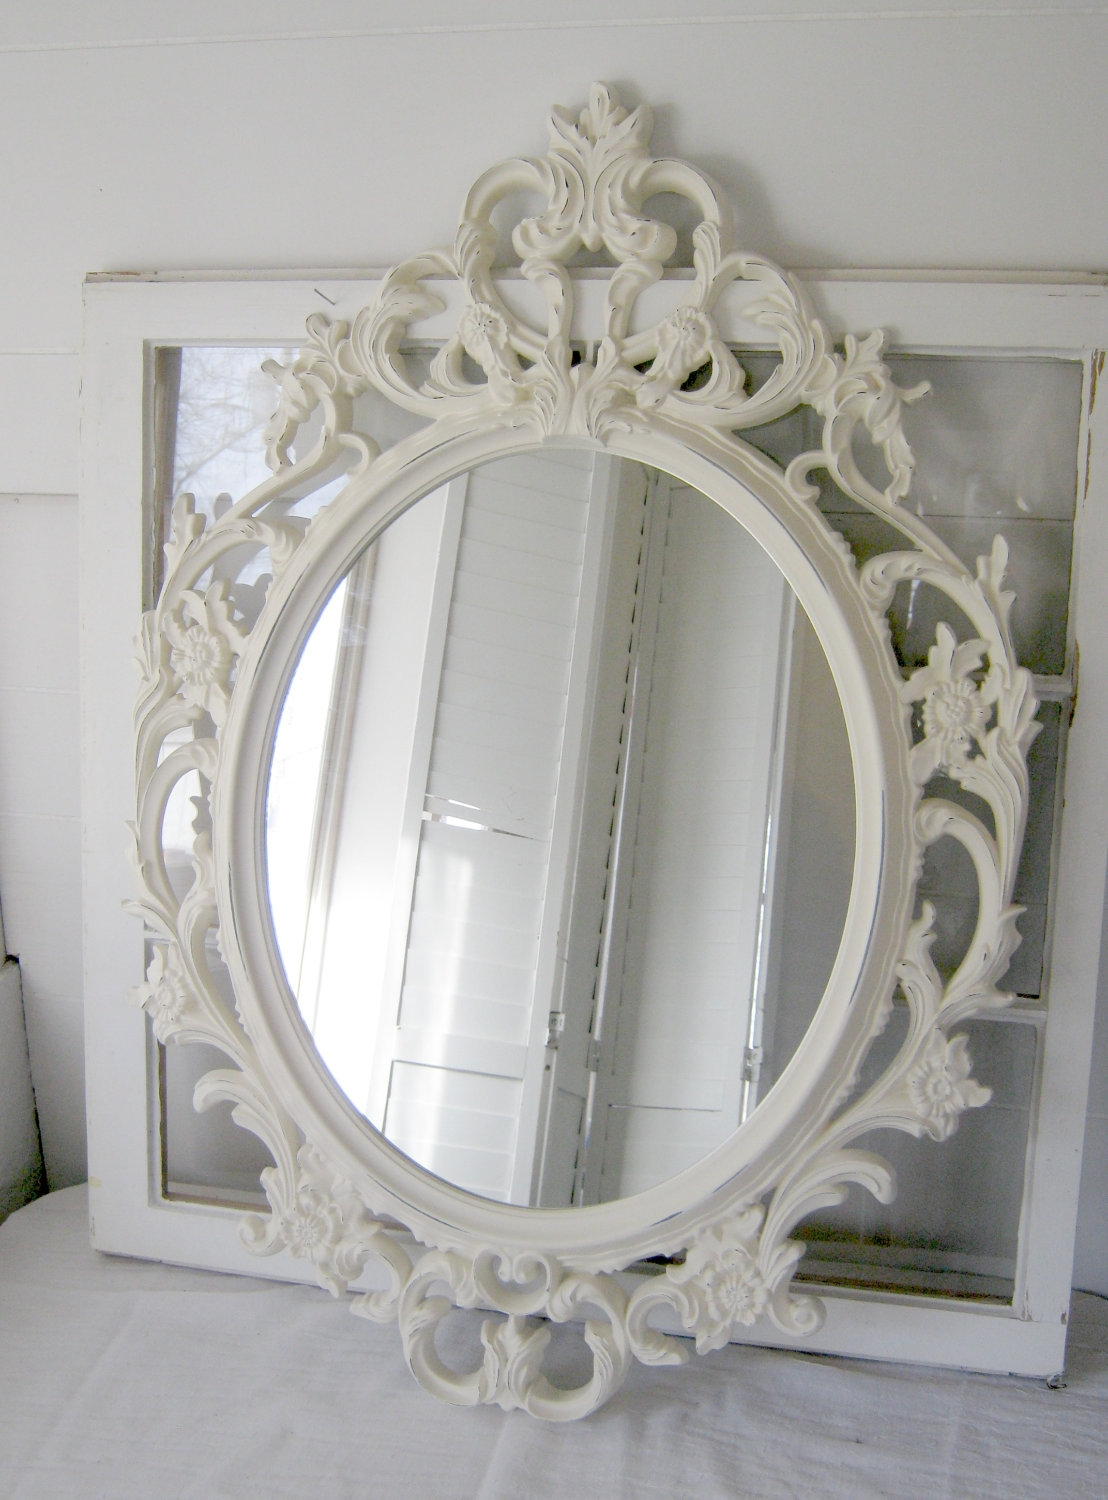 Baroque Home Decor Elegant Beautiful Gold Framed Mirror With For Modern Baroque Mirror (Image 4 of 15)